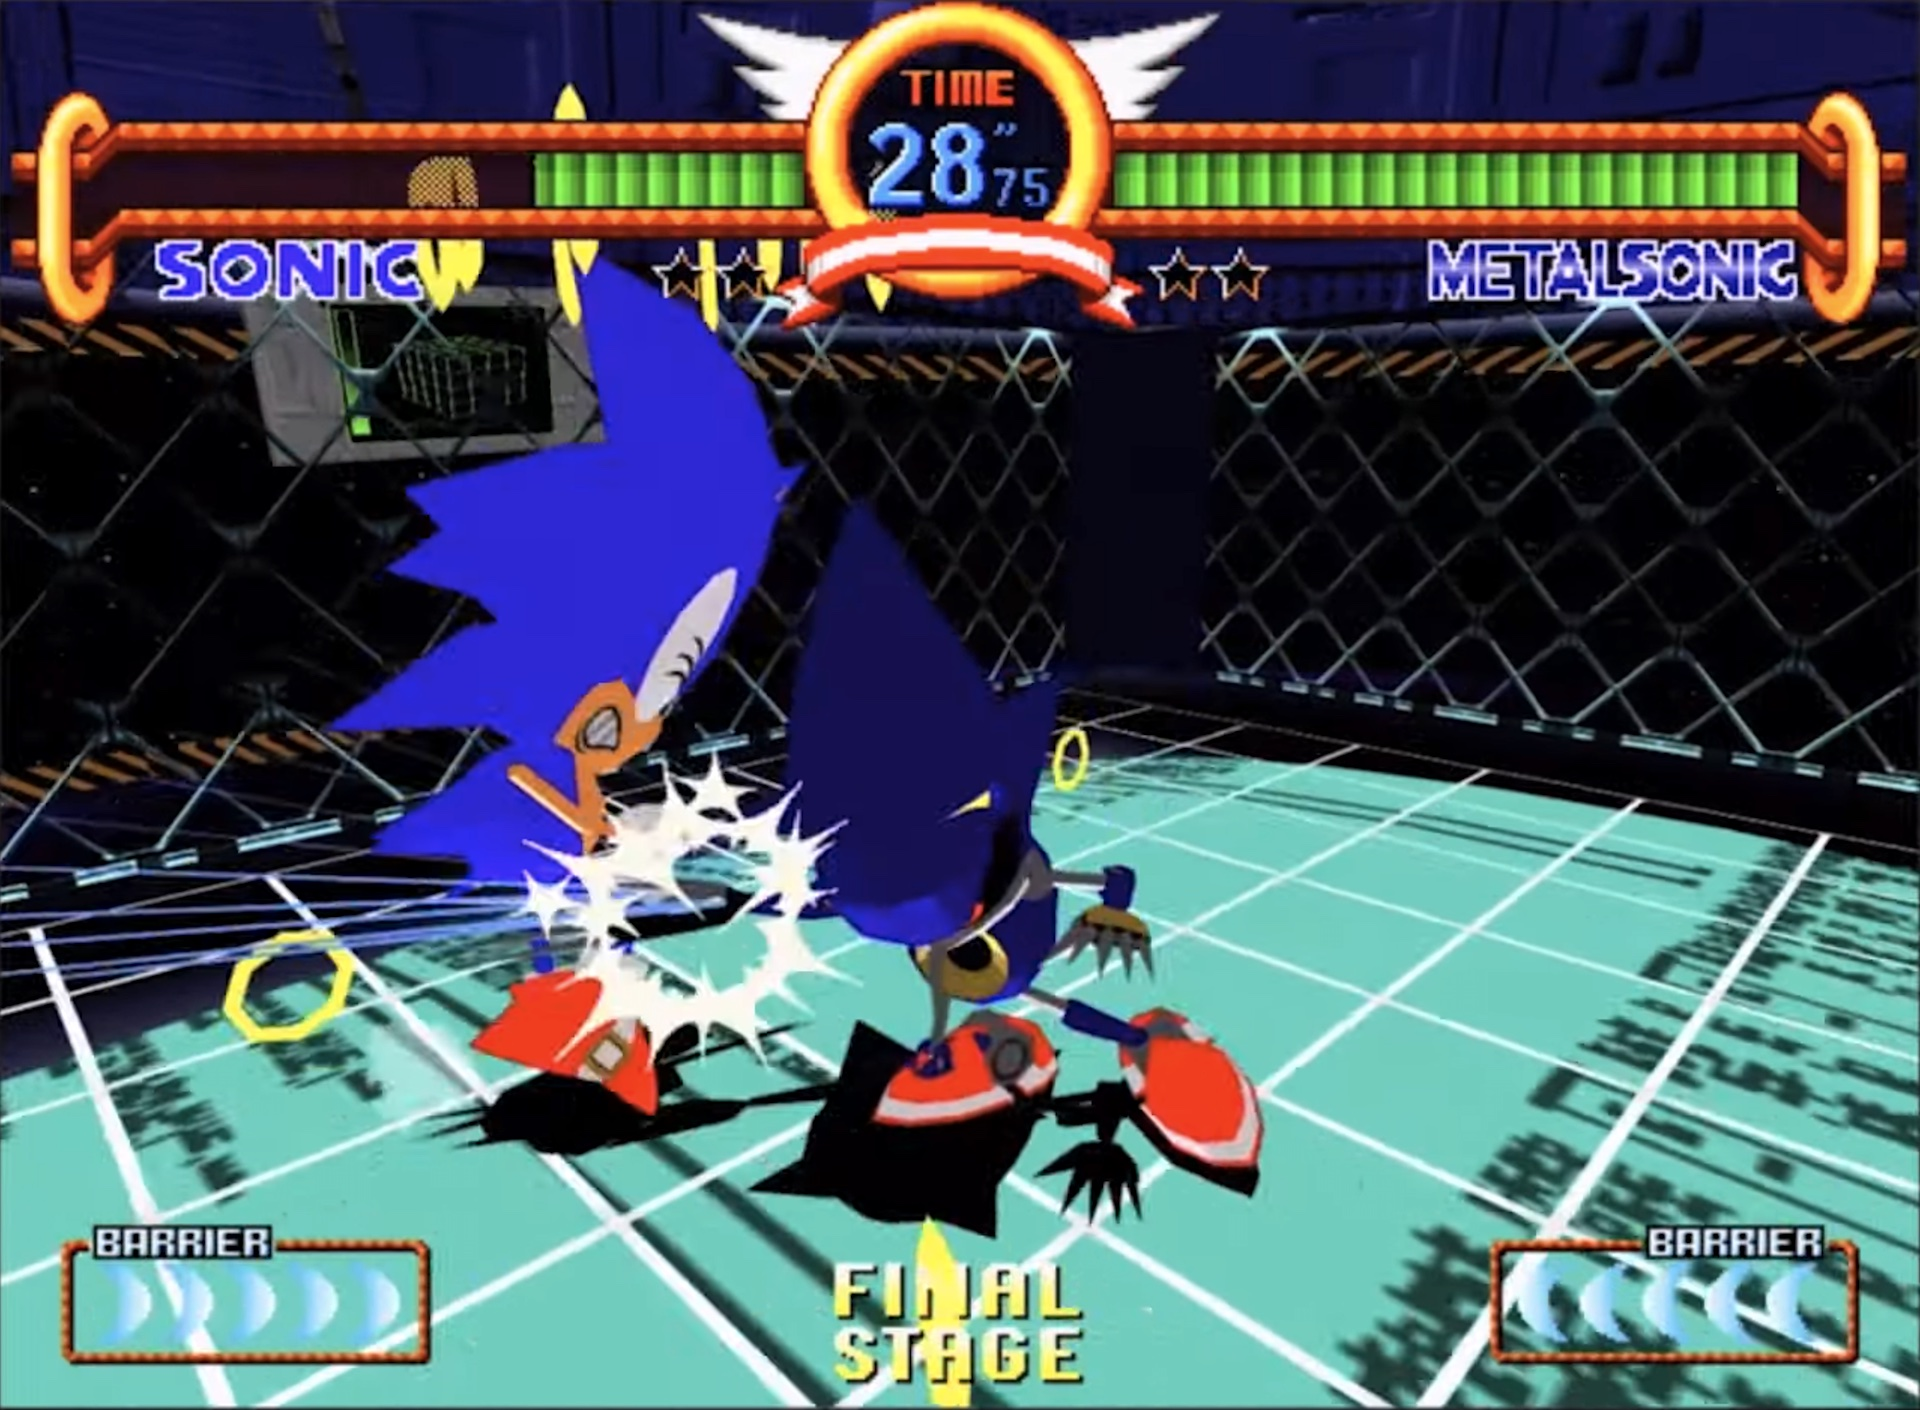 Metal Sonic punches Sonic in a screenshot from Sonic the Fighters